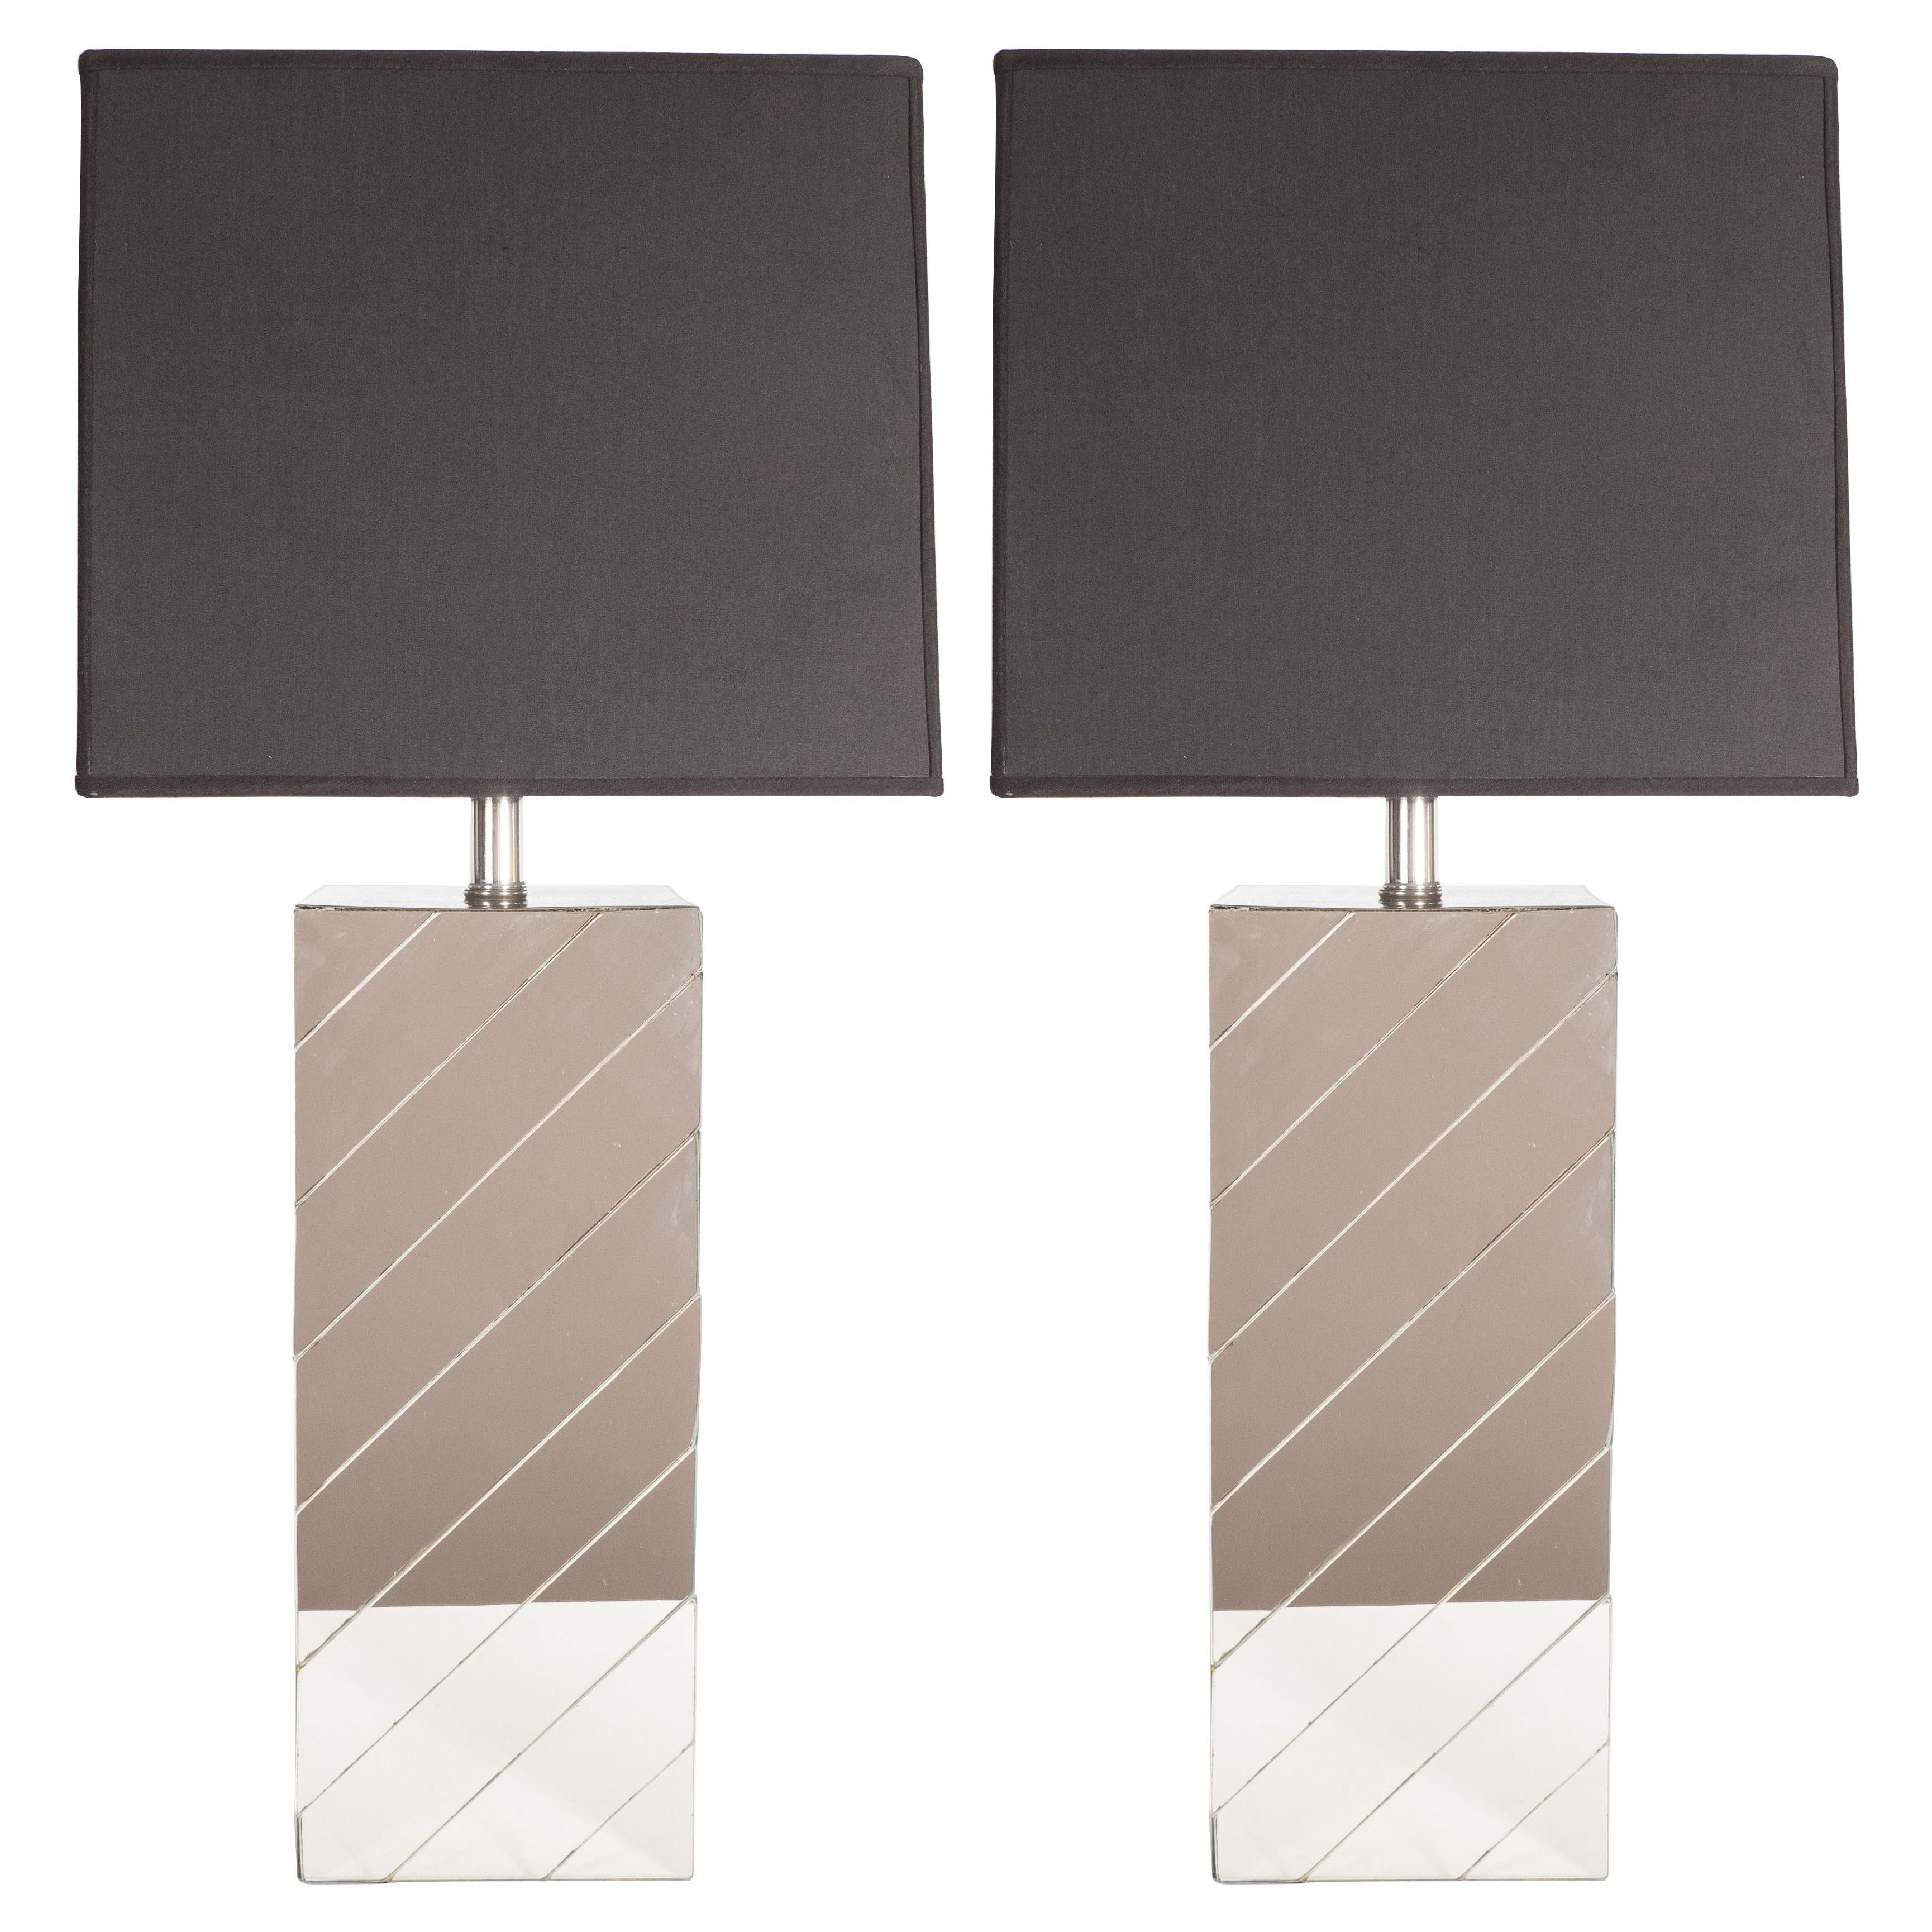 Pair of Mid-Century Modern Rectangular Mirrored Table Lamps with Nickel Fittings